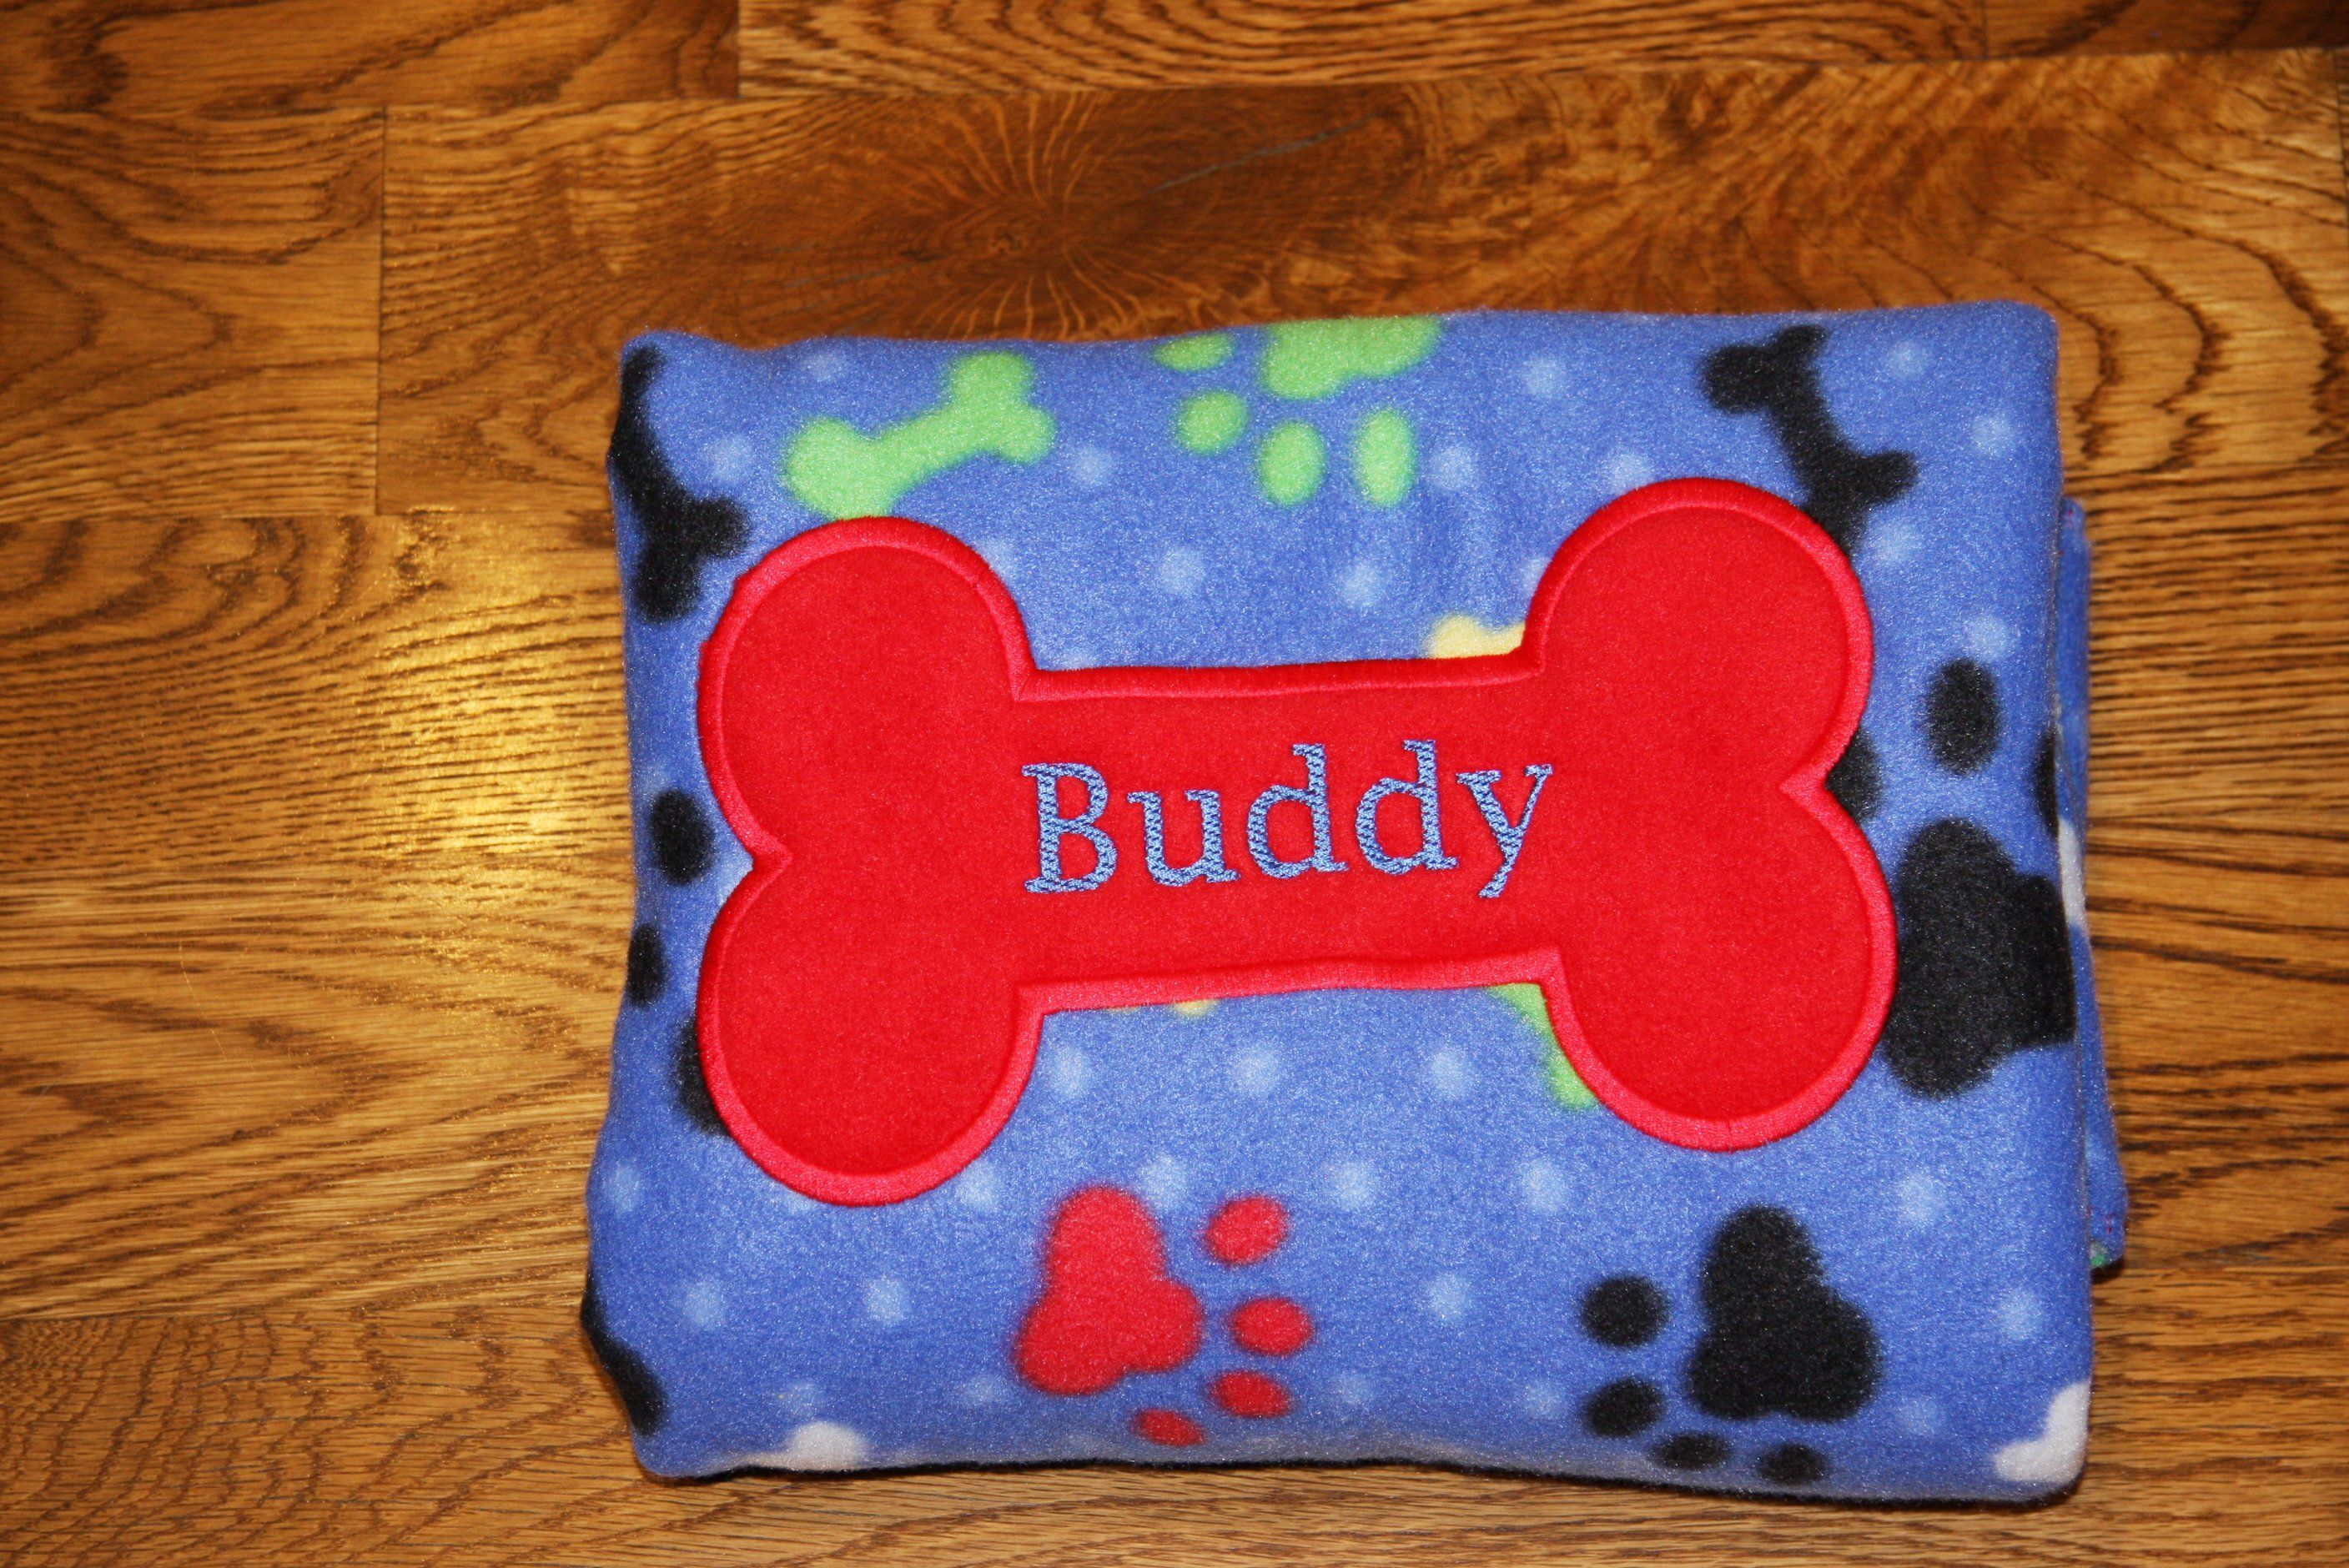 899f61a60e REVERSIBLE Personalized Pet Blanket Dog Blanket Fleece Custom Embroidered  with Dog Name Paw Prints bones made to order Puppy blanket by  RedBobbinDesigns on ...